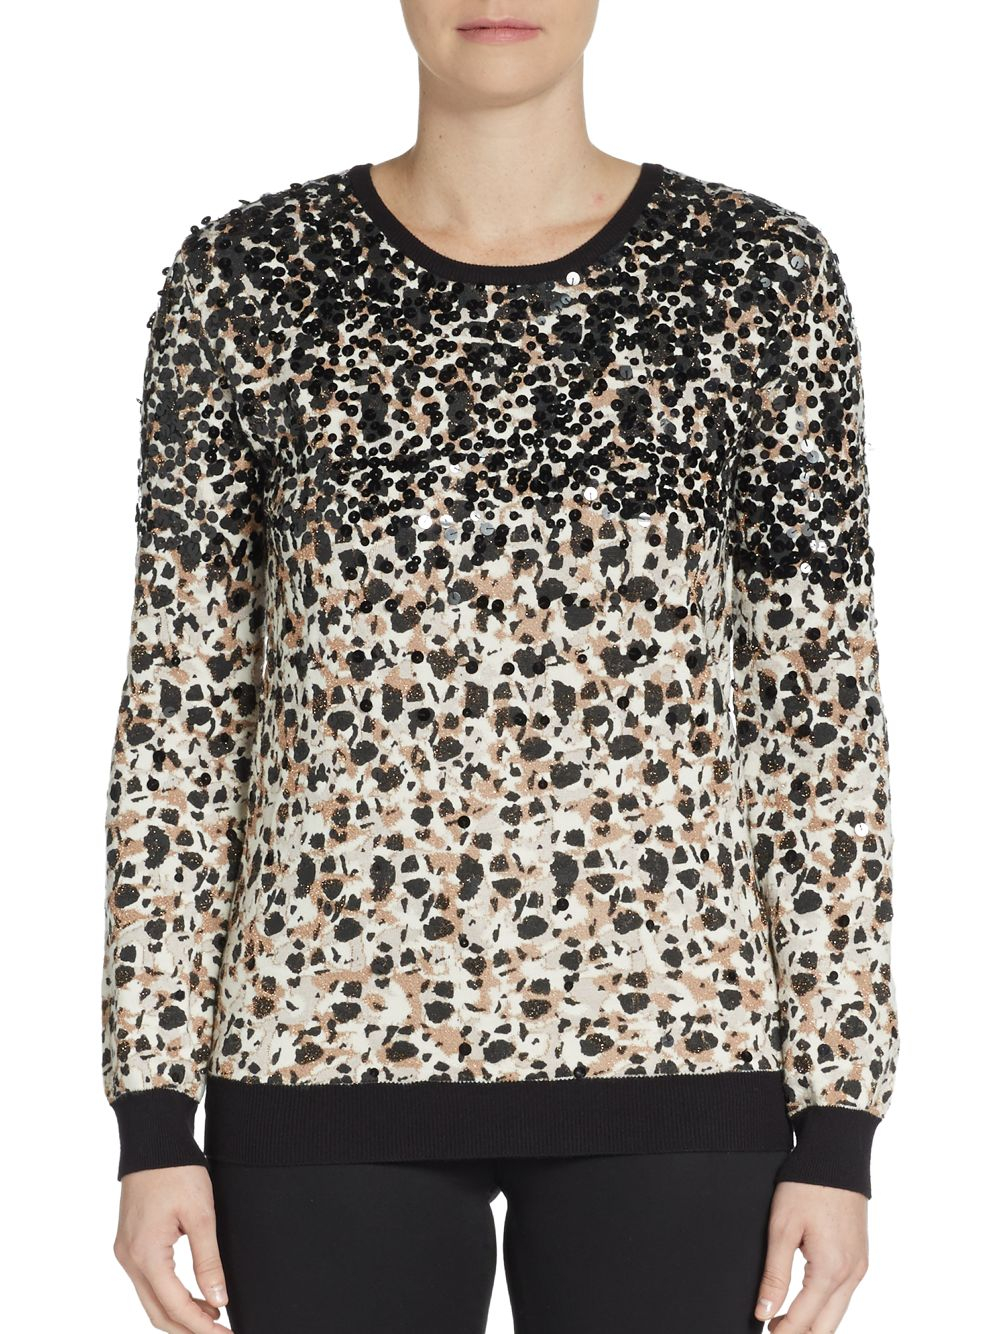 marc by marc jacobs patterned sweater in black lyst. Black Bedroom Furniture Sets. Home Design Ideas